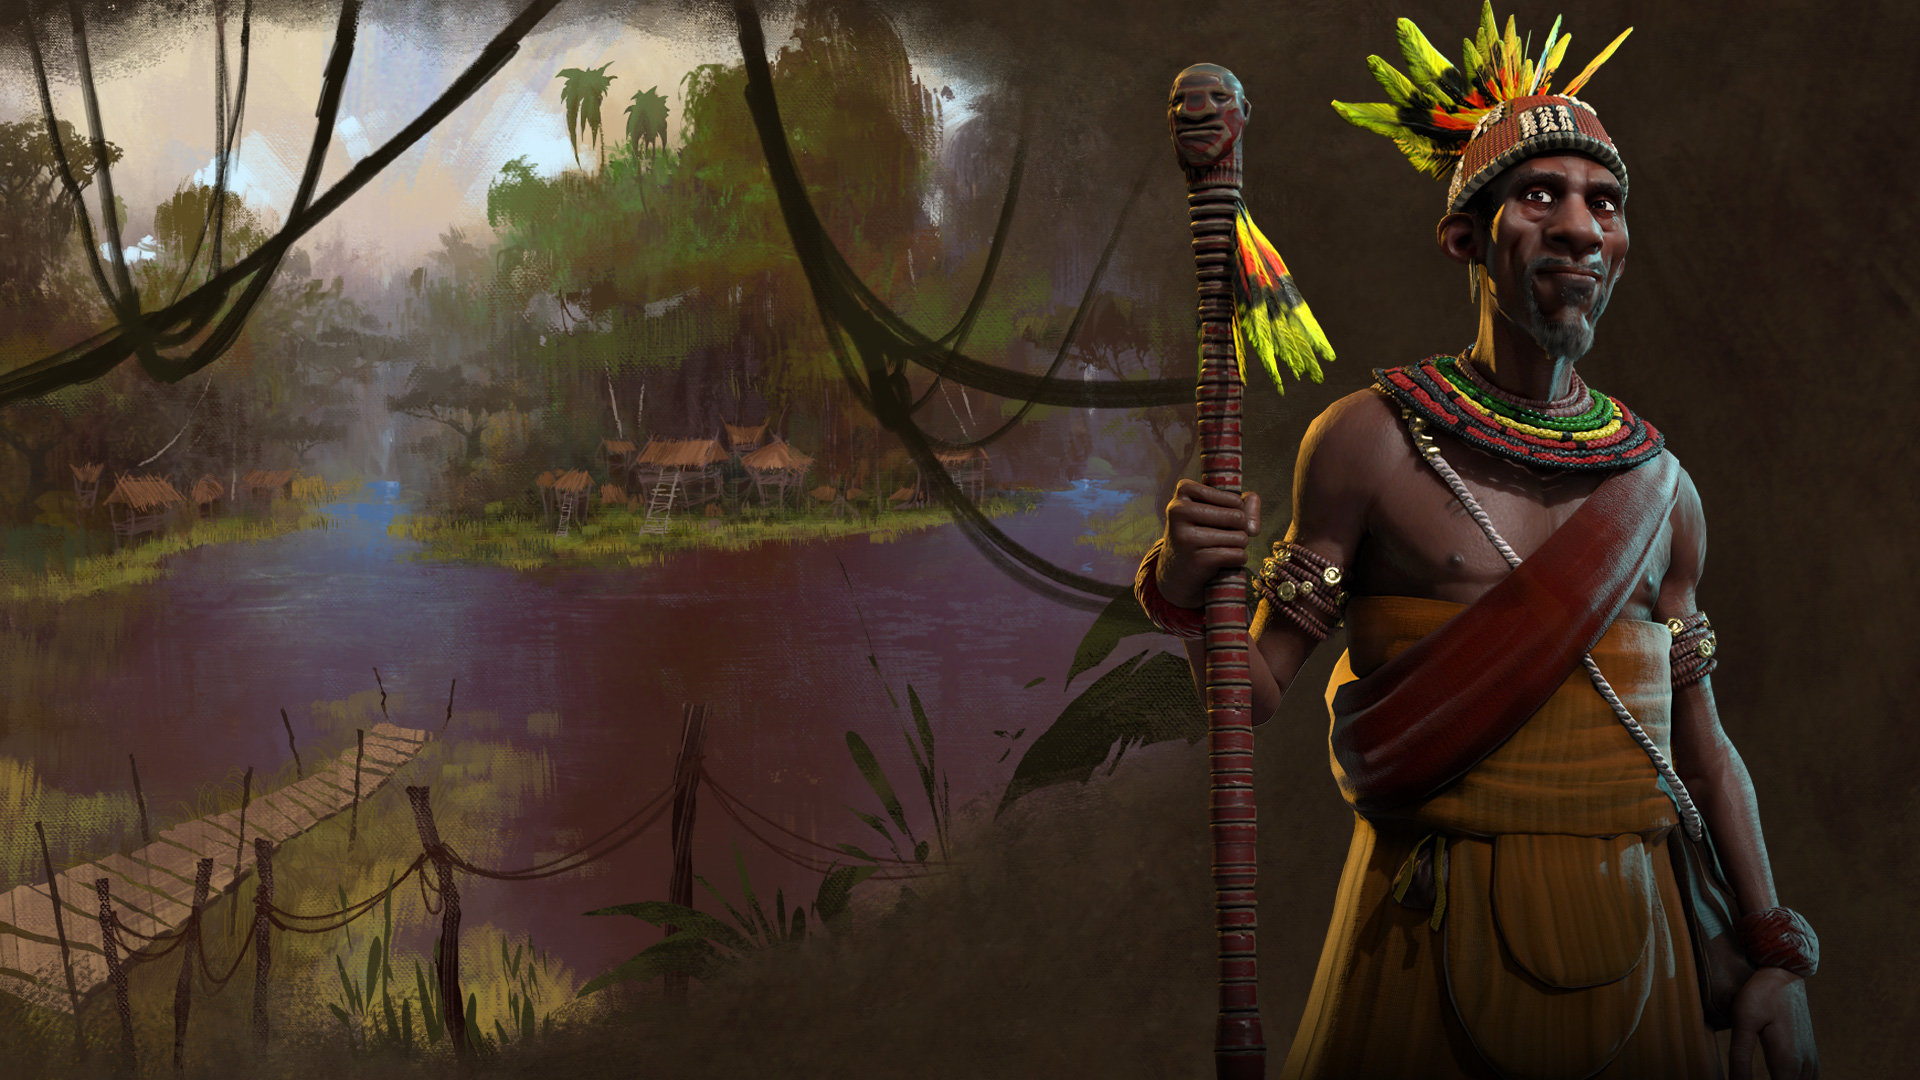 Civilization Video Game Wallpapers 1920x1080 Full HD